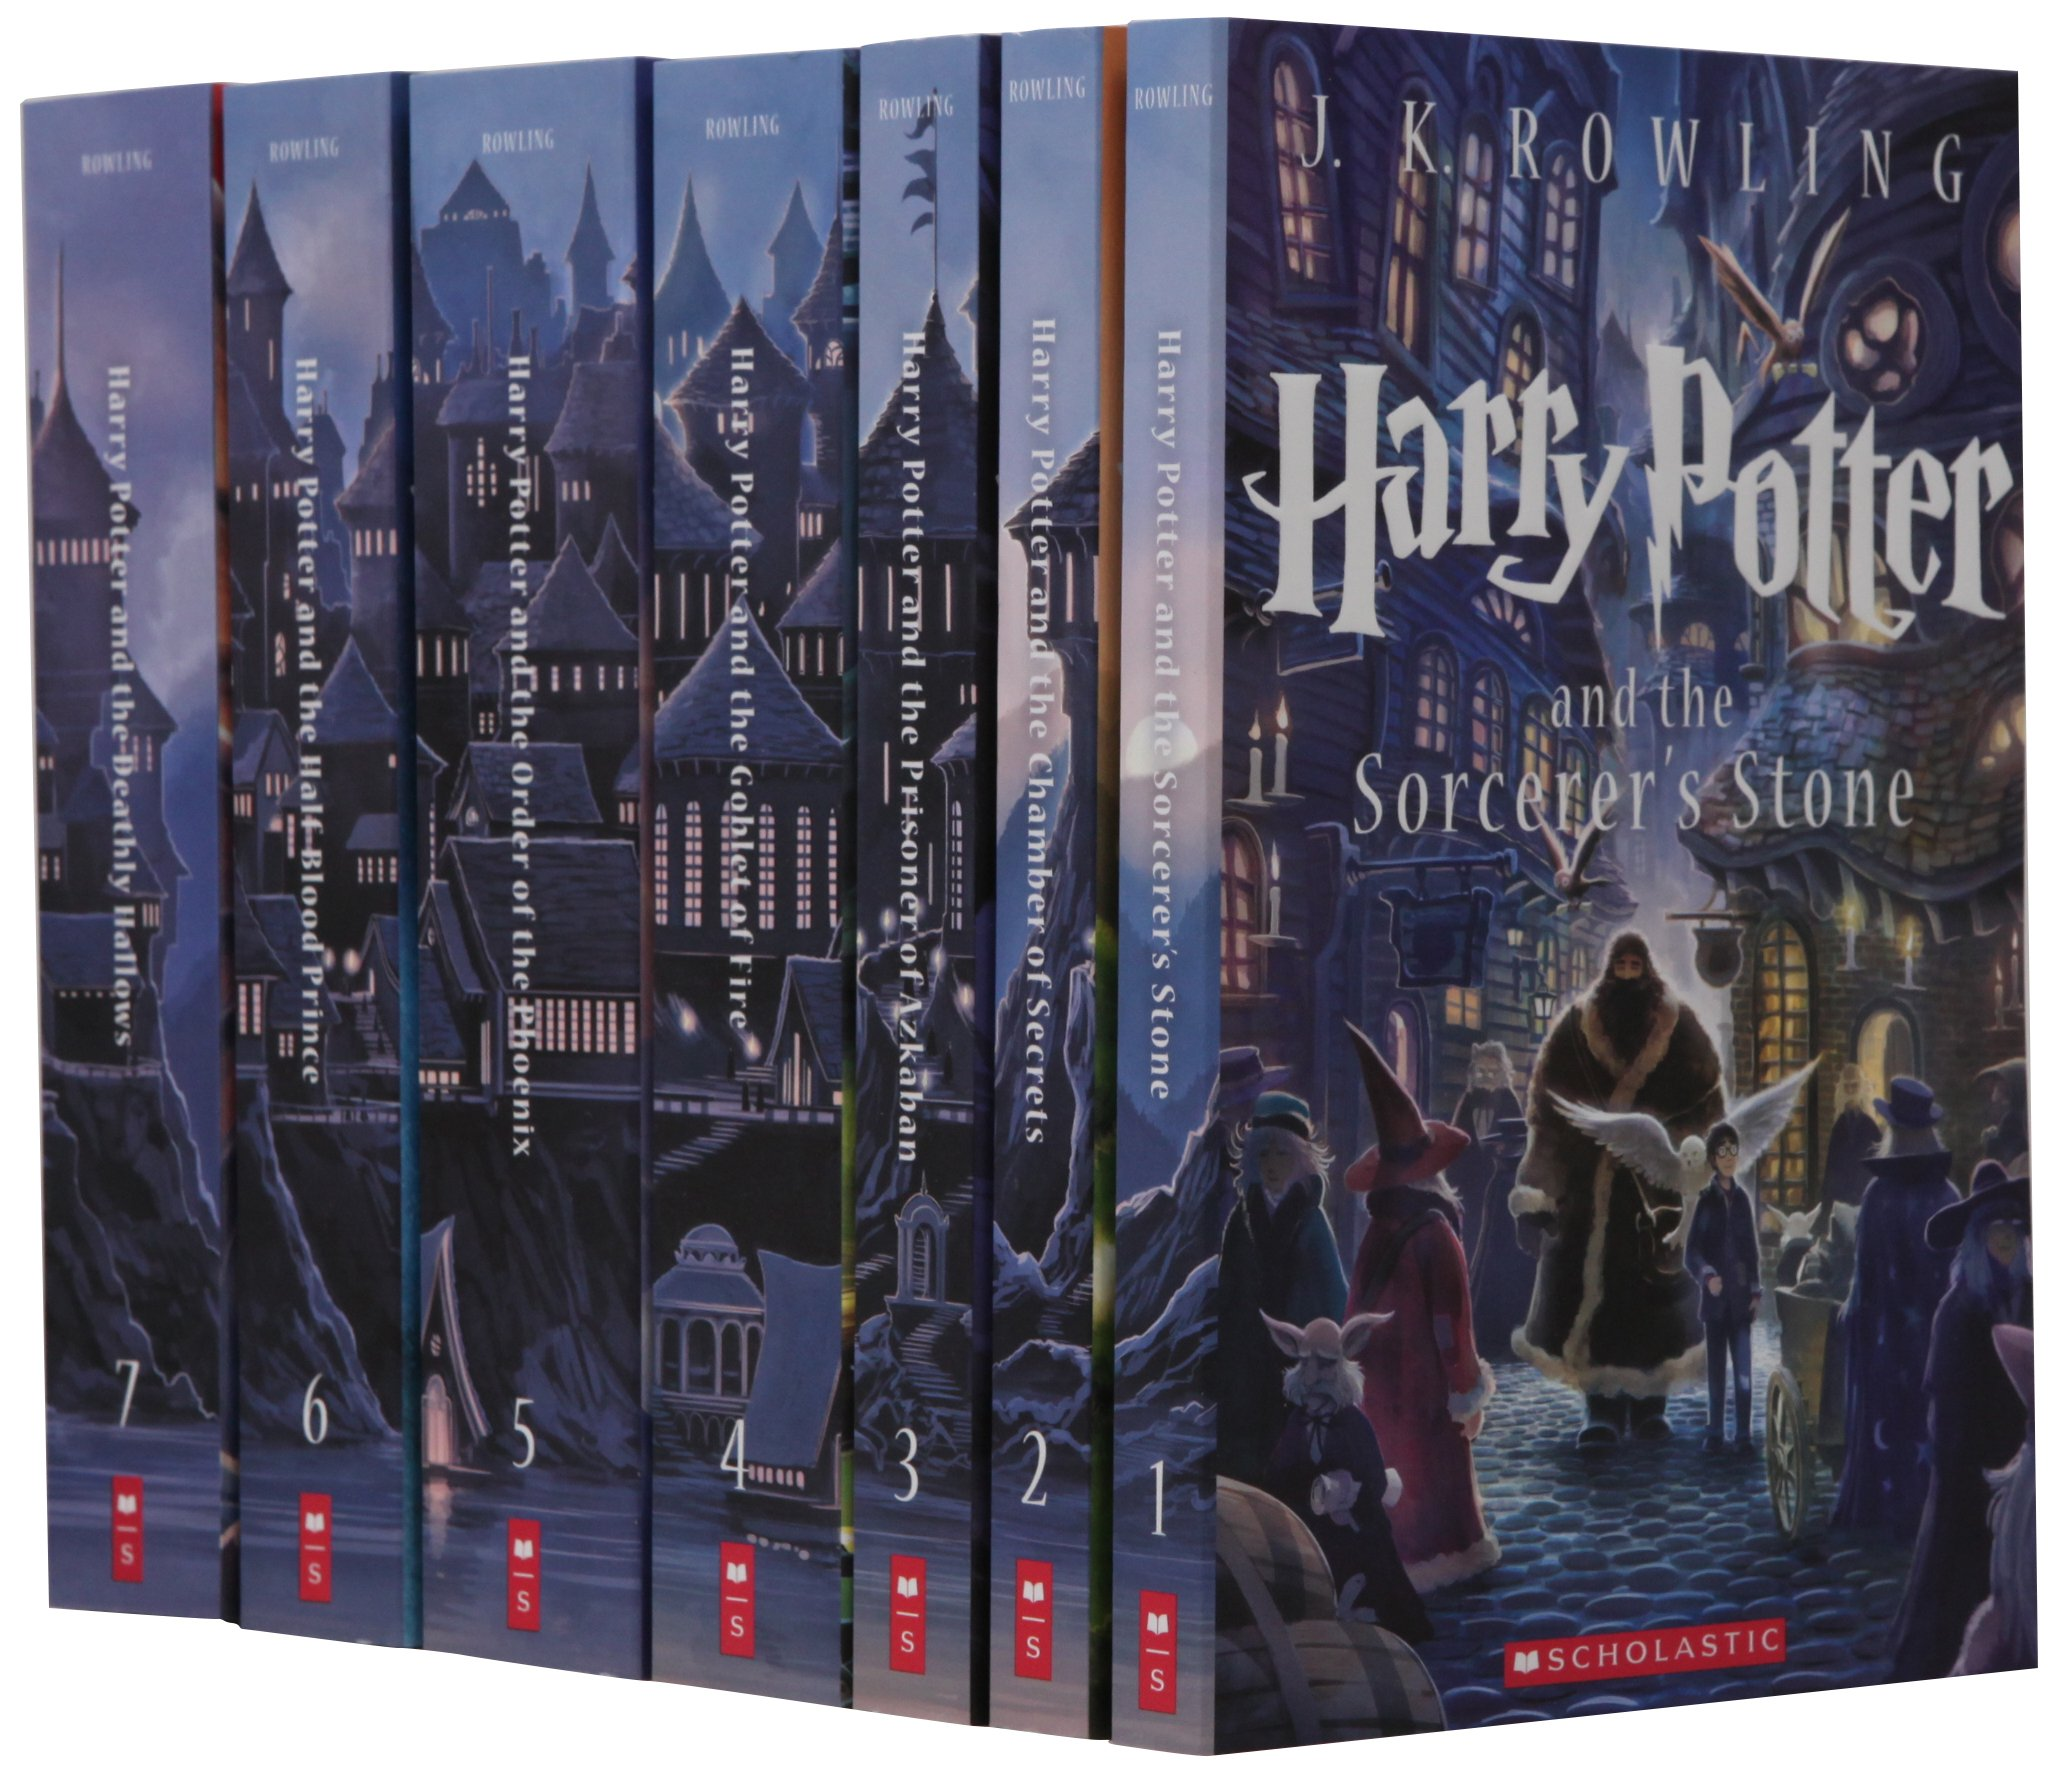 Scholastic: Special Edition Harry Potter Paperback Box Set: Amazon ...